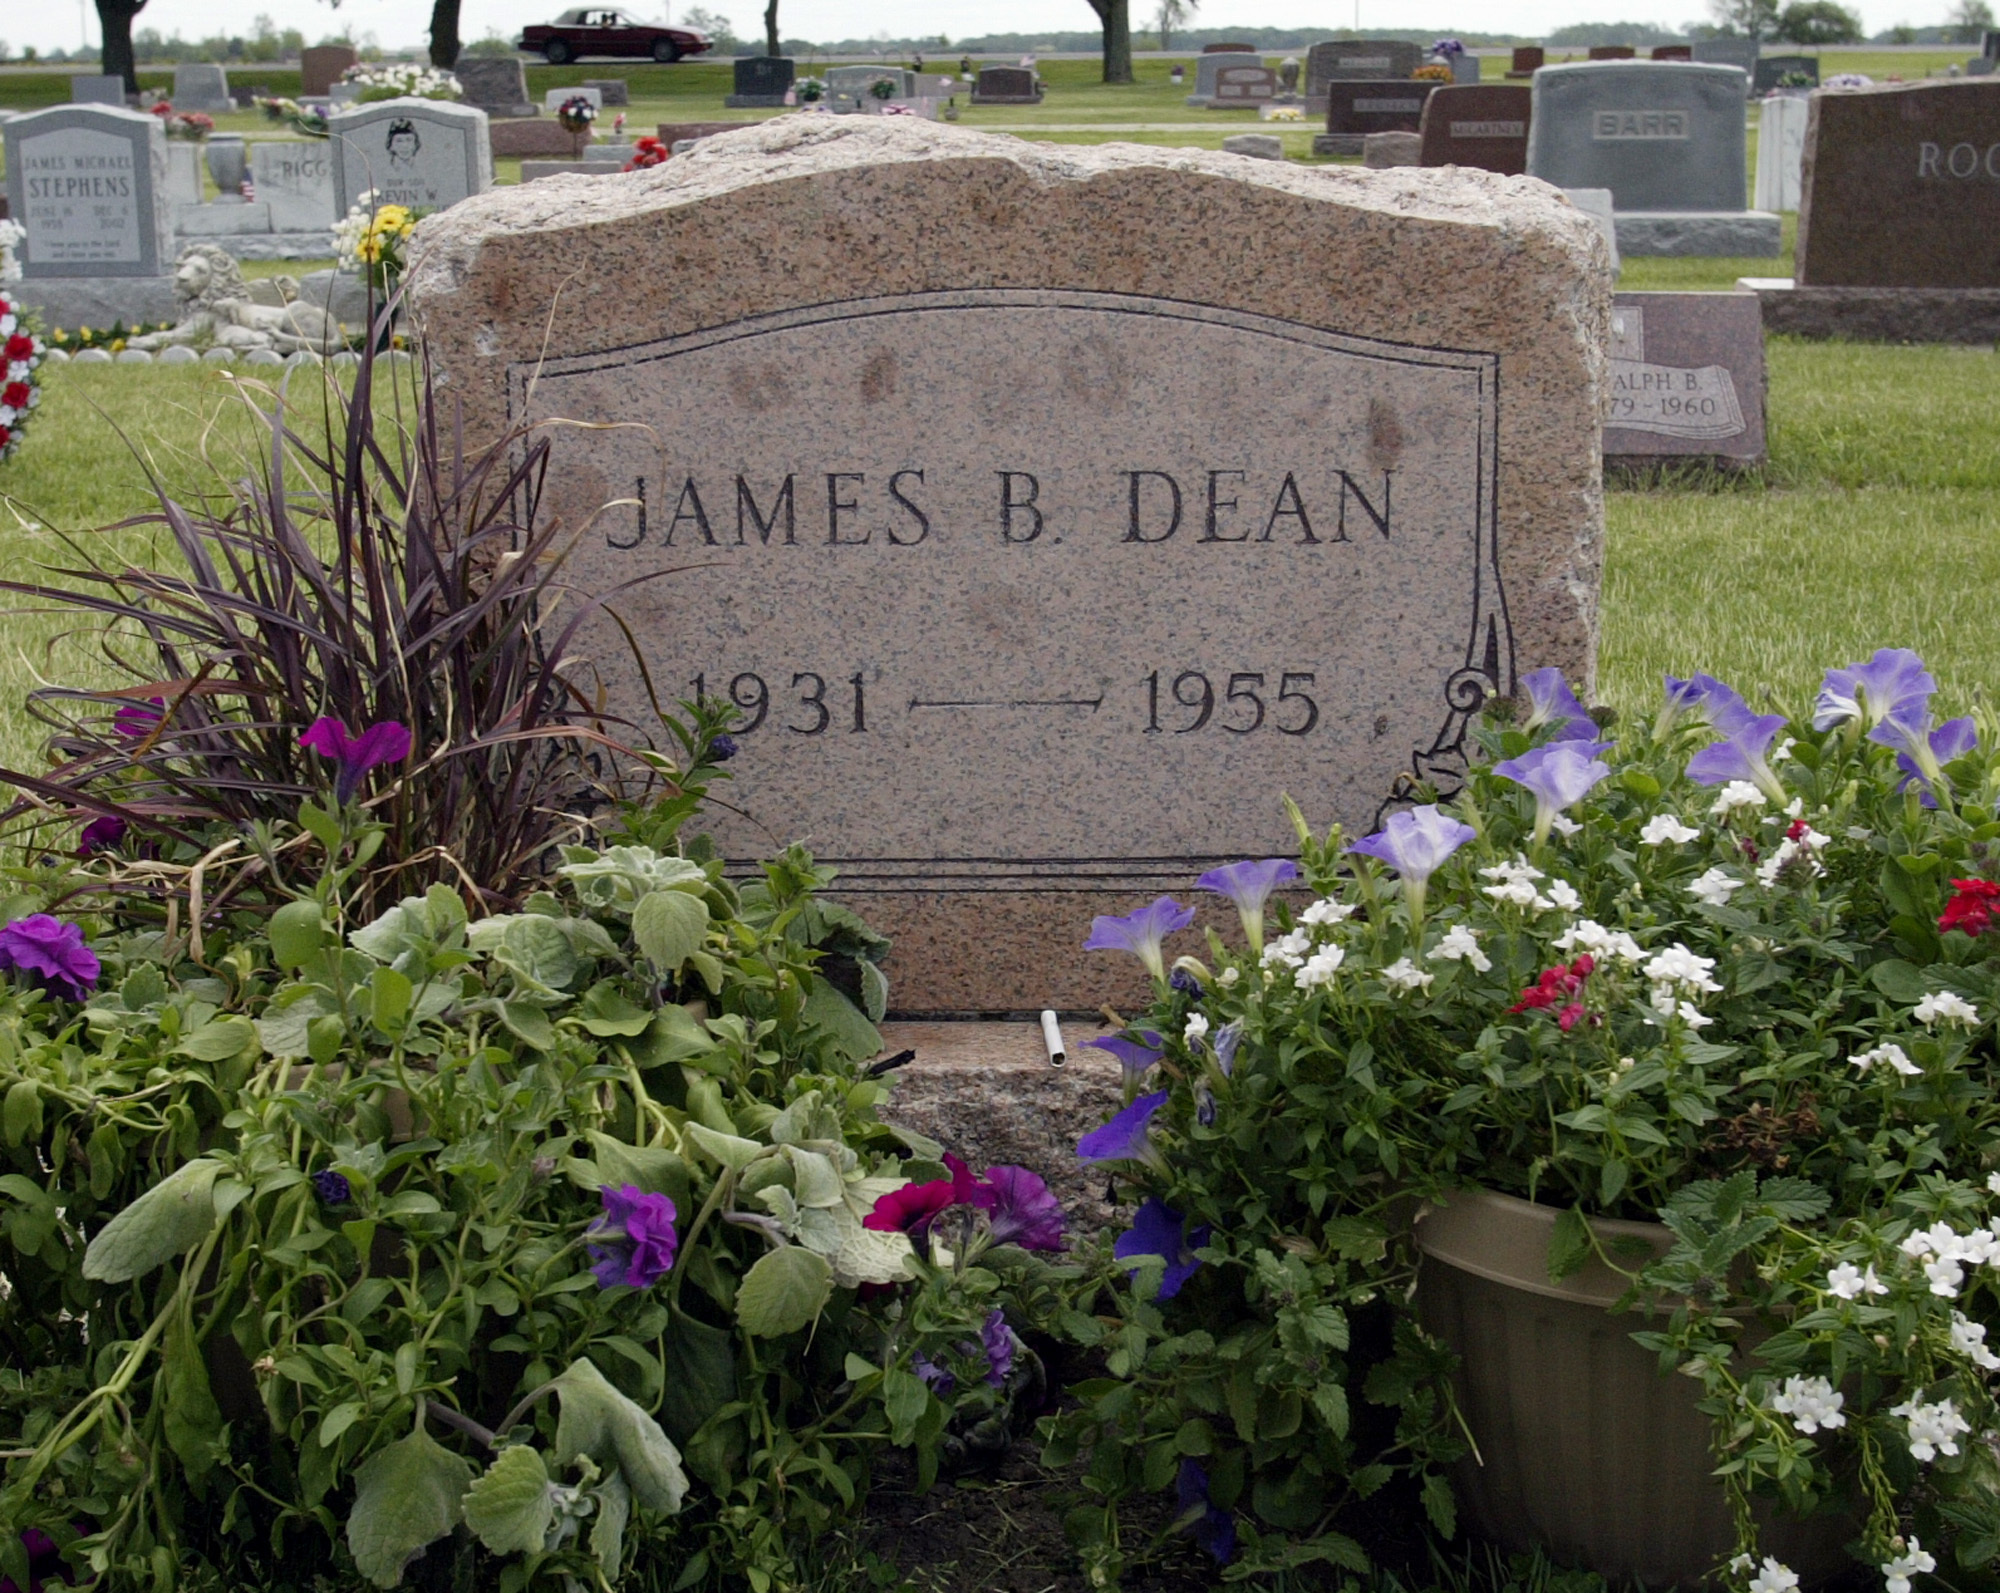 This 2005 file photo shows plants and flowers at the grave of actor James Dean in Fairmount, Indiana.